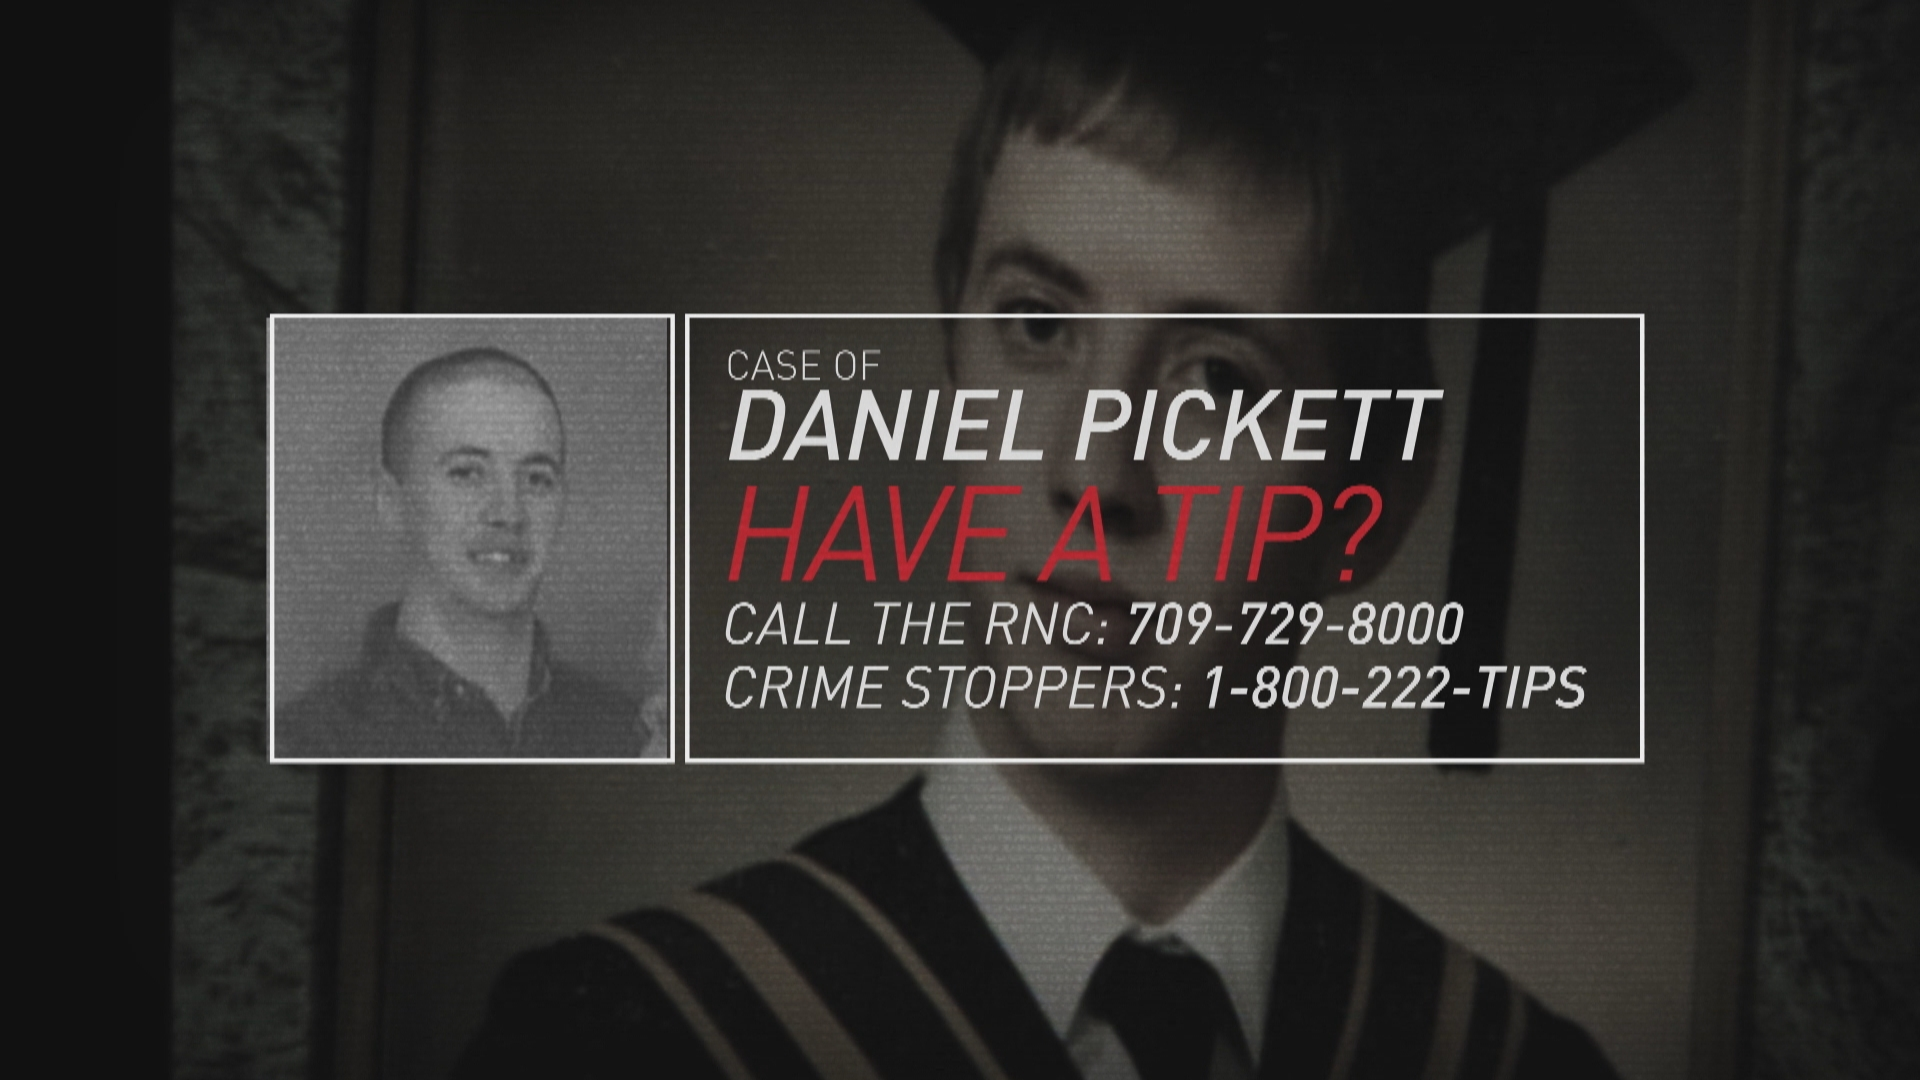 Anyone with information on the disappearance of Daniel Pickett is asked to contact the Royal Newfoundland Constabulary or Crime Stoppers. (CBC Graphics)